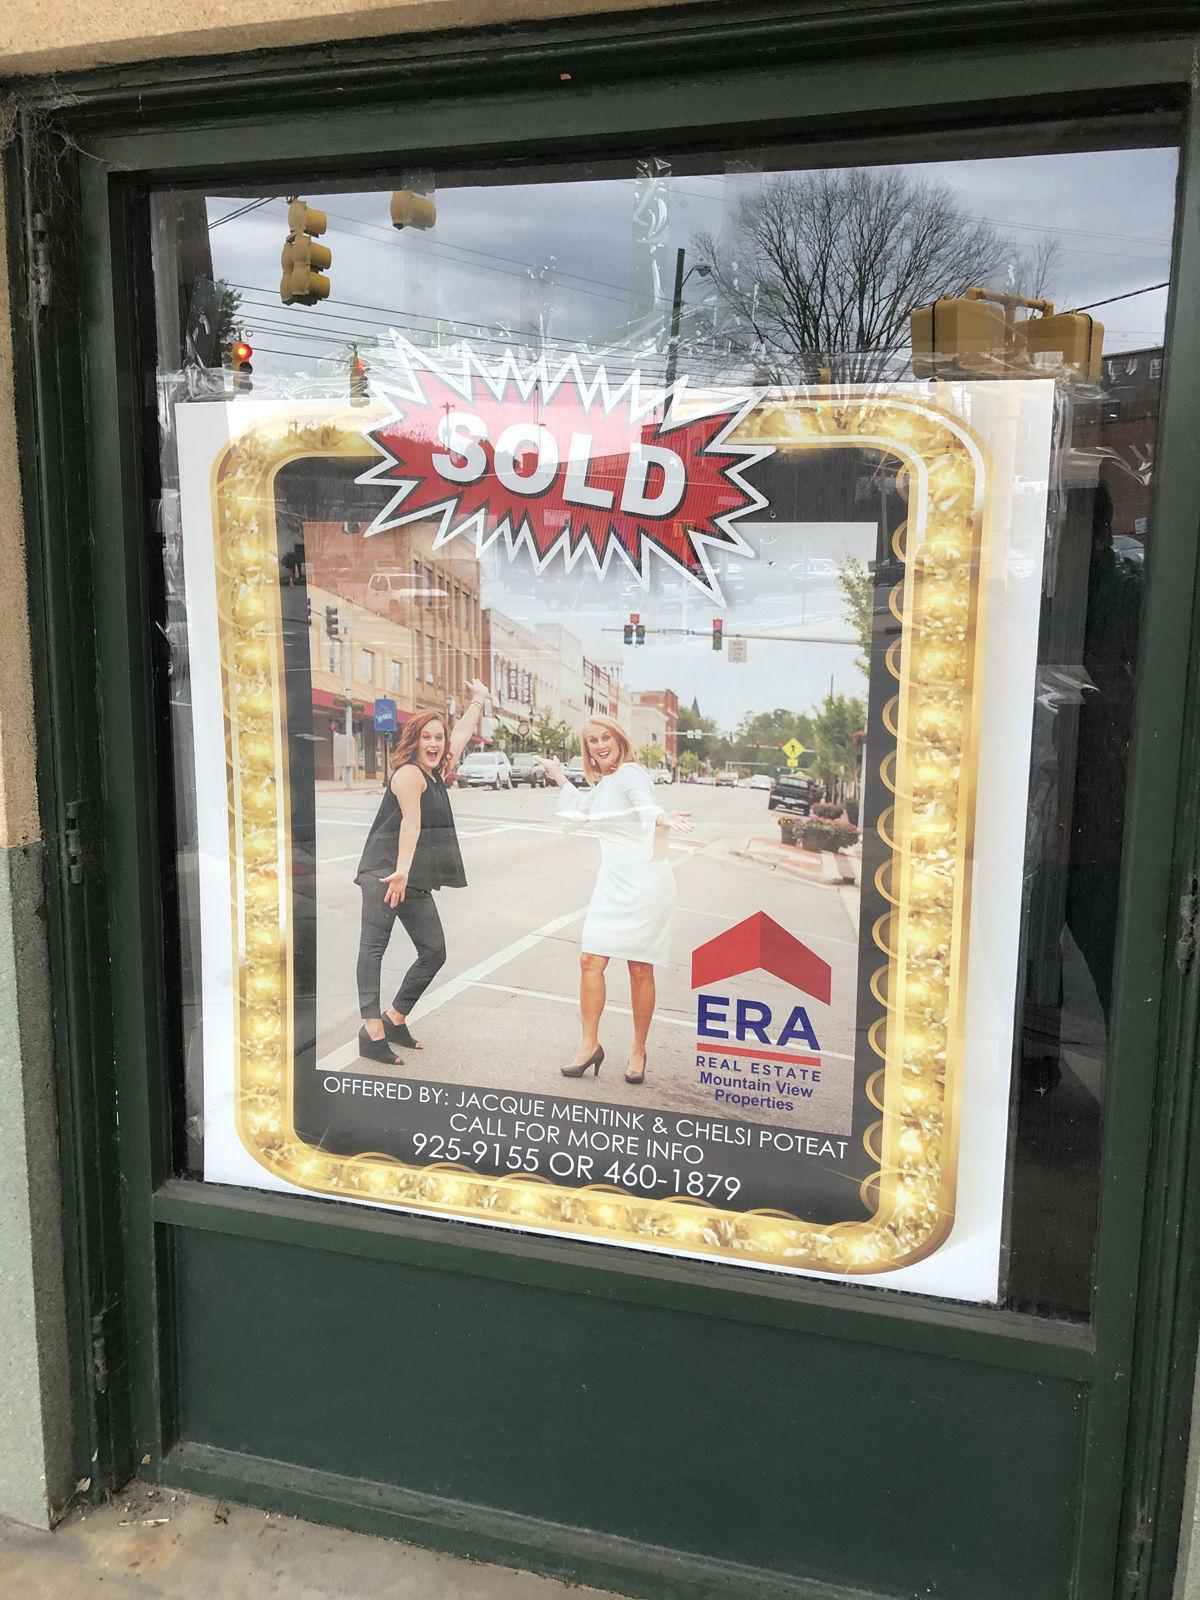 House Theater has a new owner